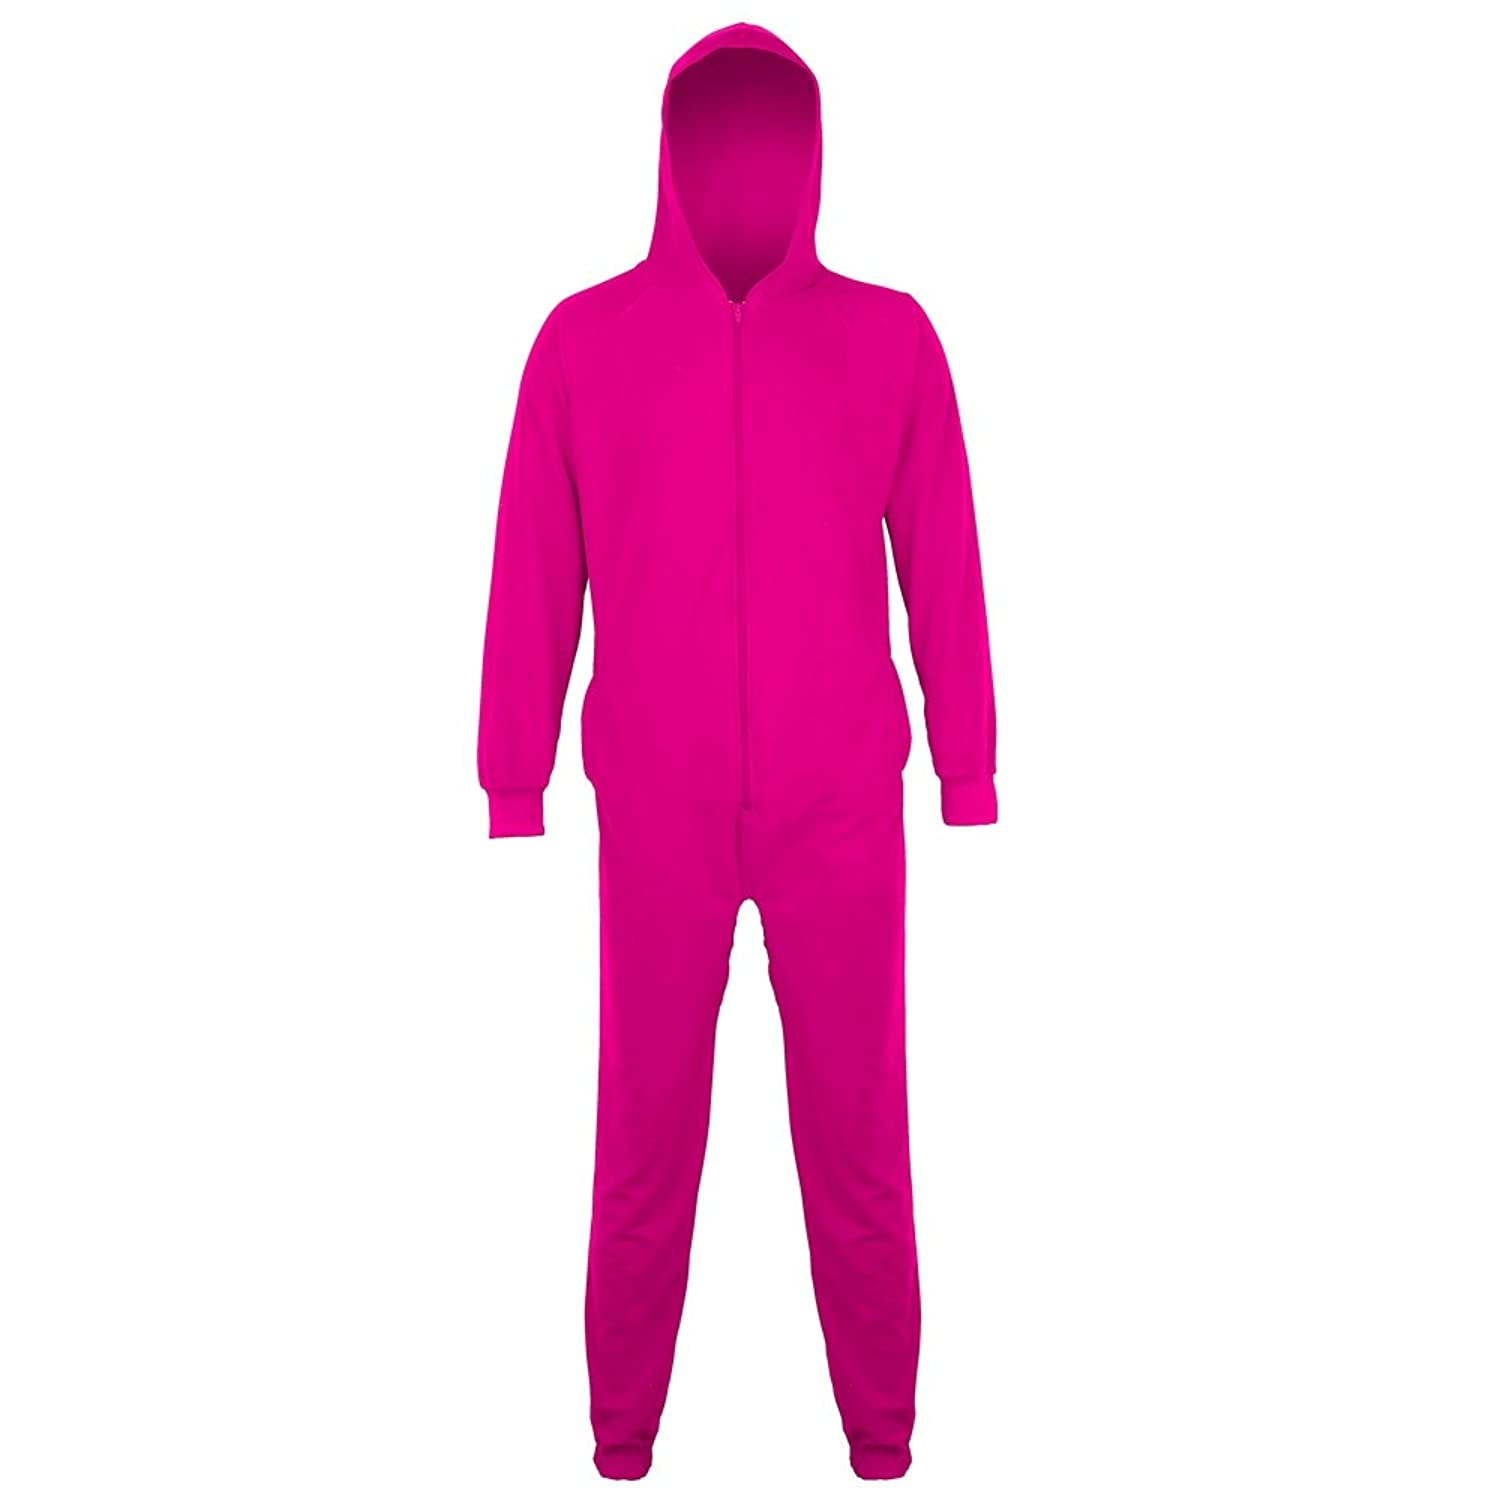 Ladies or Mens Winter Essential Hooded Soft Fleece All In One Onesie Pyjamas